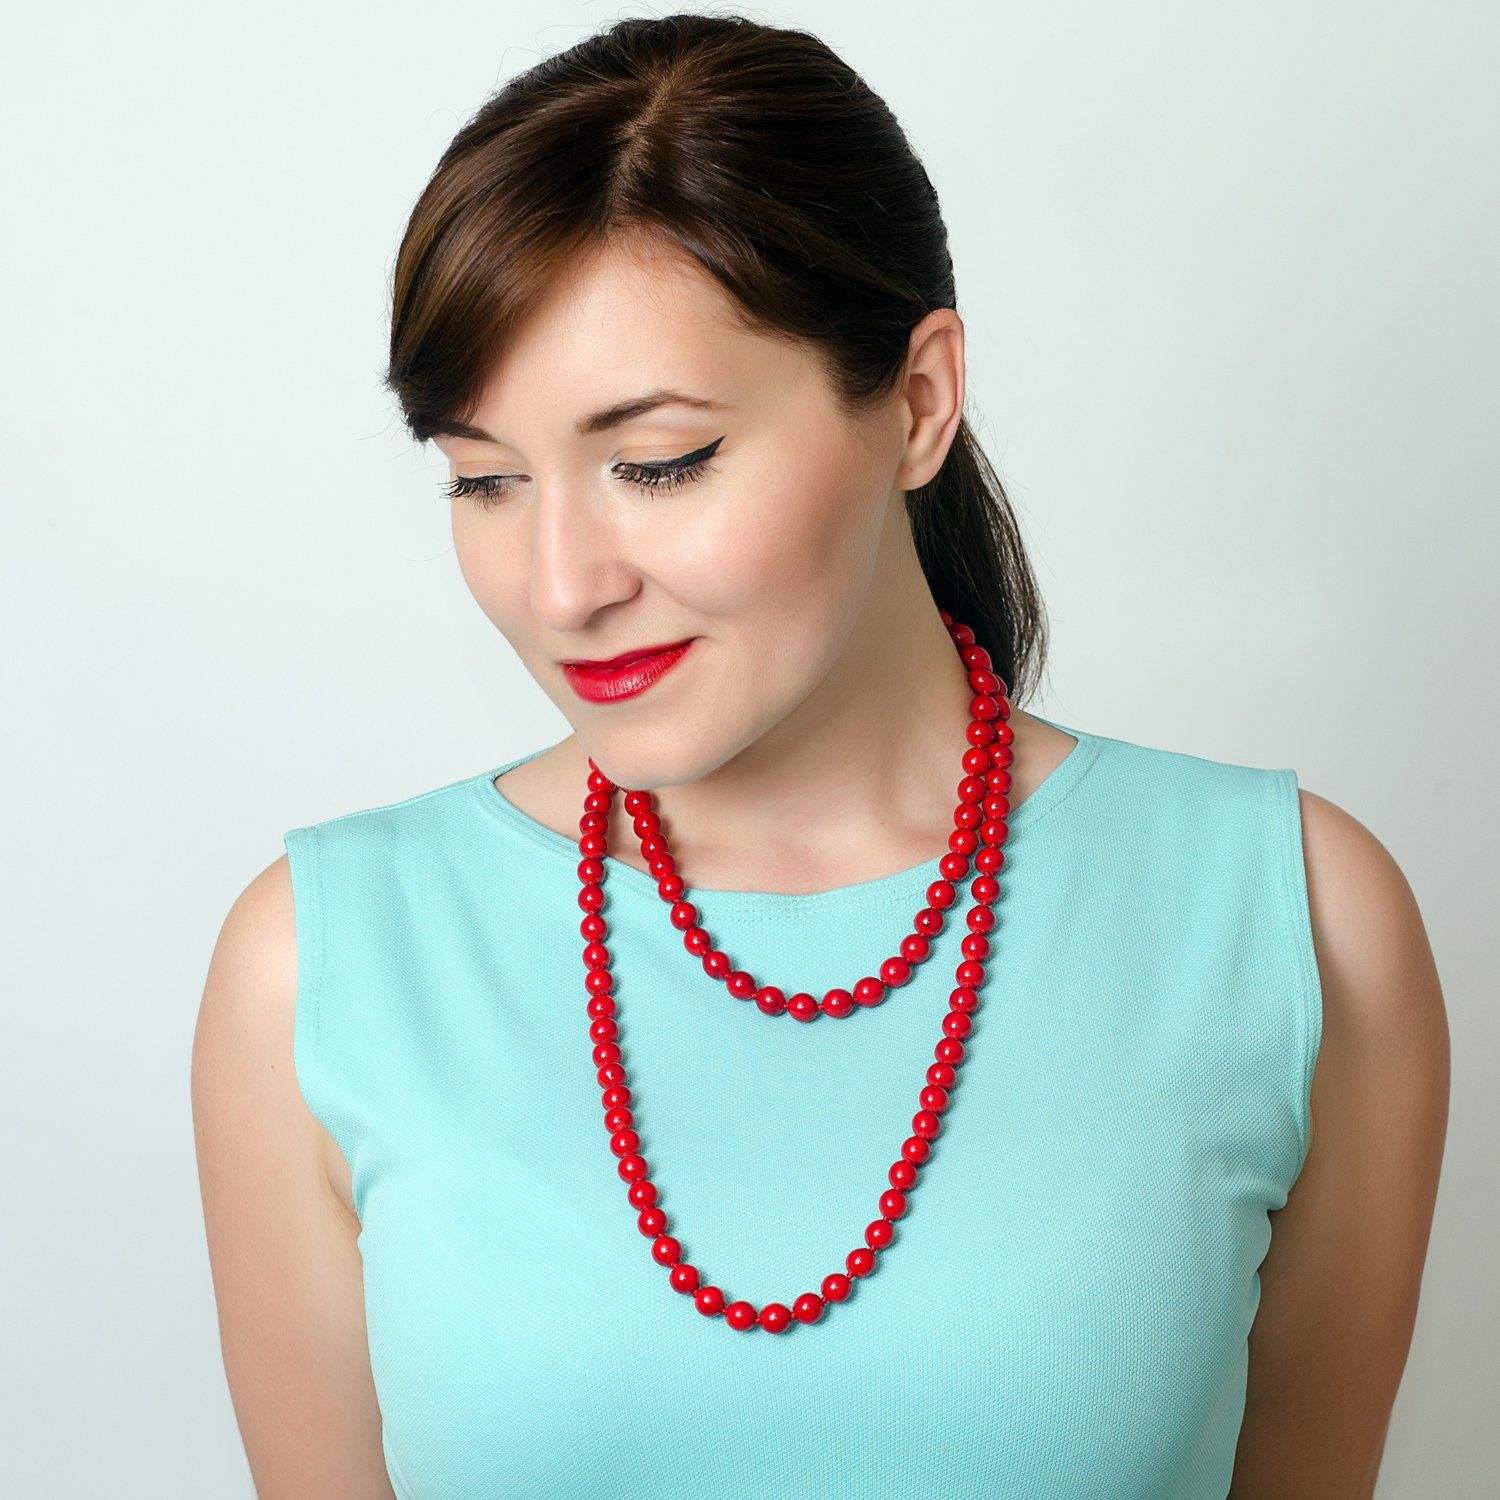 1960s Jewelry Styles and Trends to Wear Jane Stone Statement Turquoise Bib Round Short Bead Red Double Strand Long Necklace Jewelry for Women Teen Girls $13.99 AT vintagedancer.com